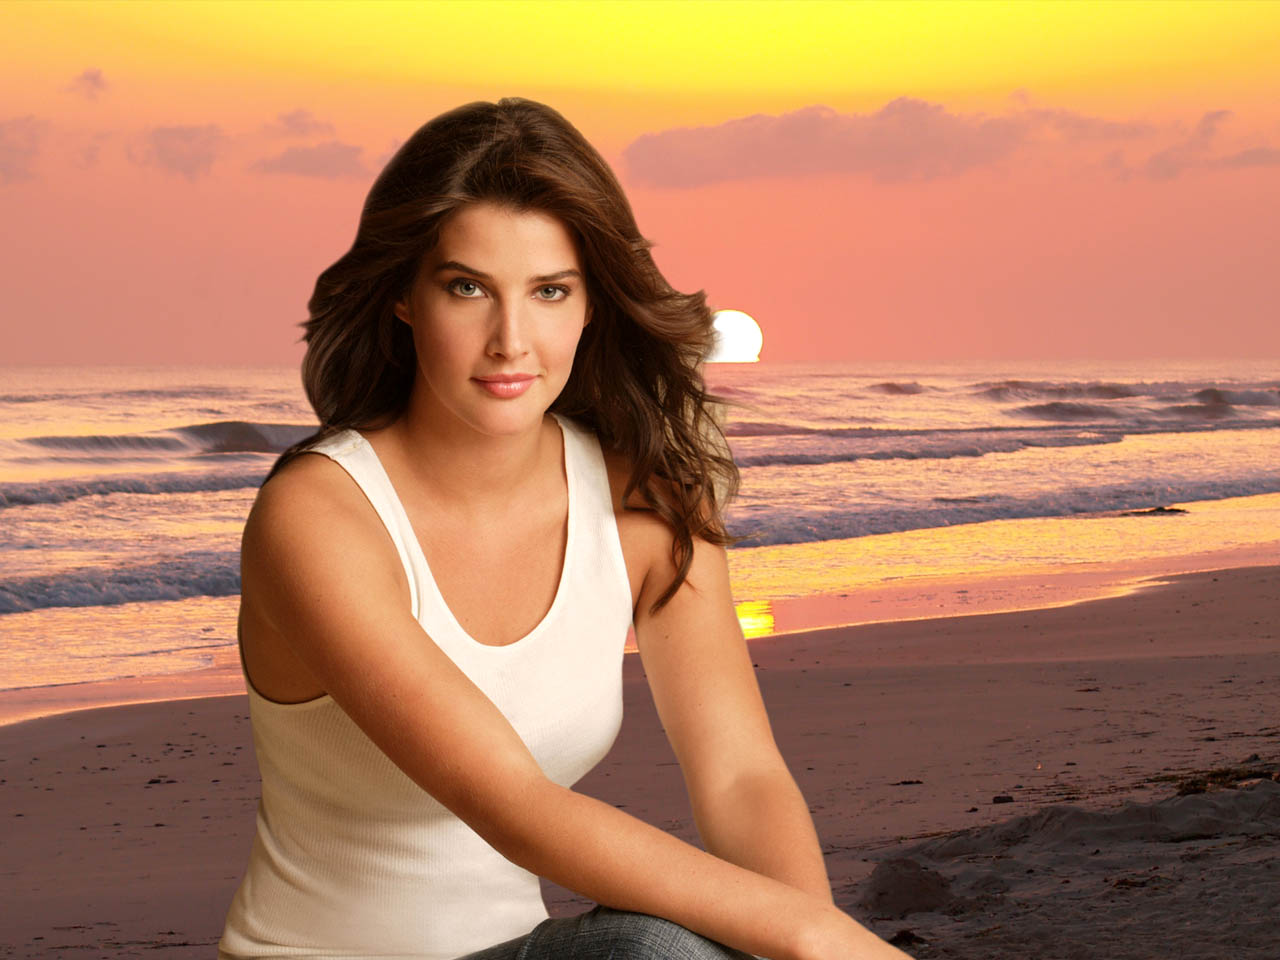 Cobie Smulders hd New Nice Wallpapers 2013   World Sound 1280x960